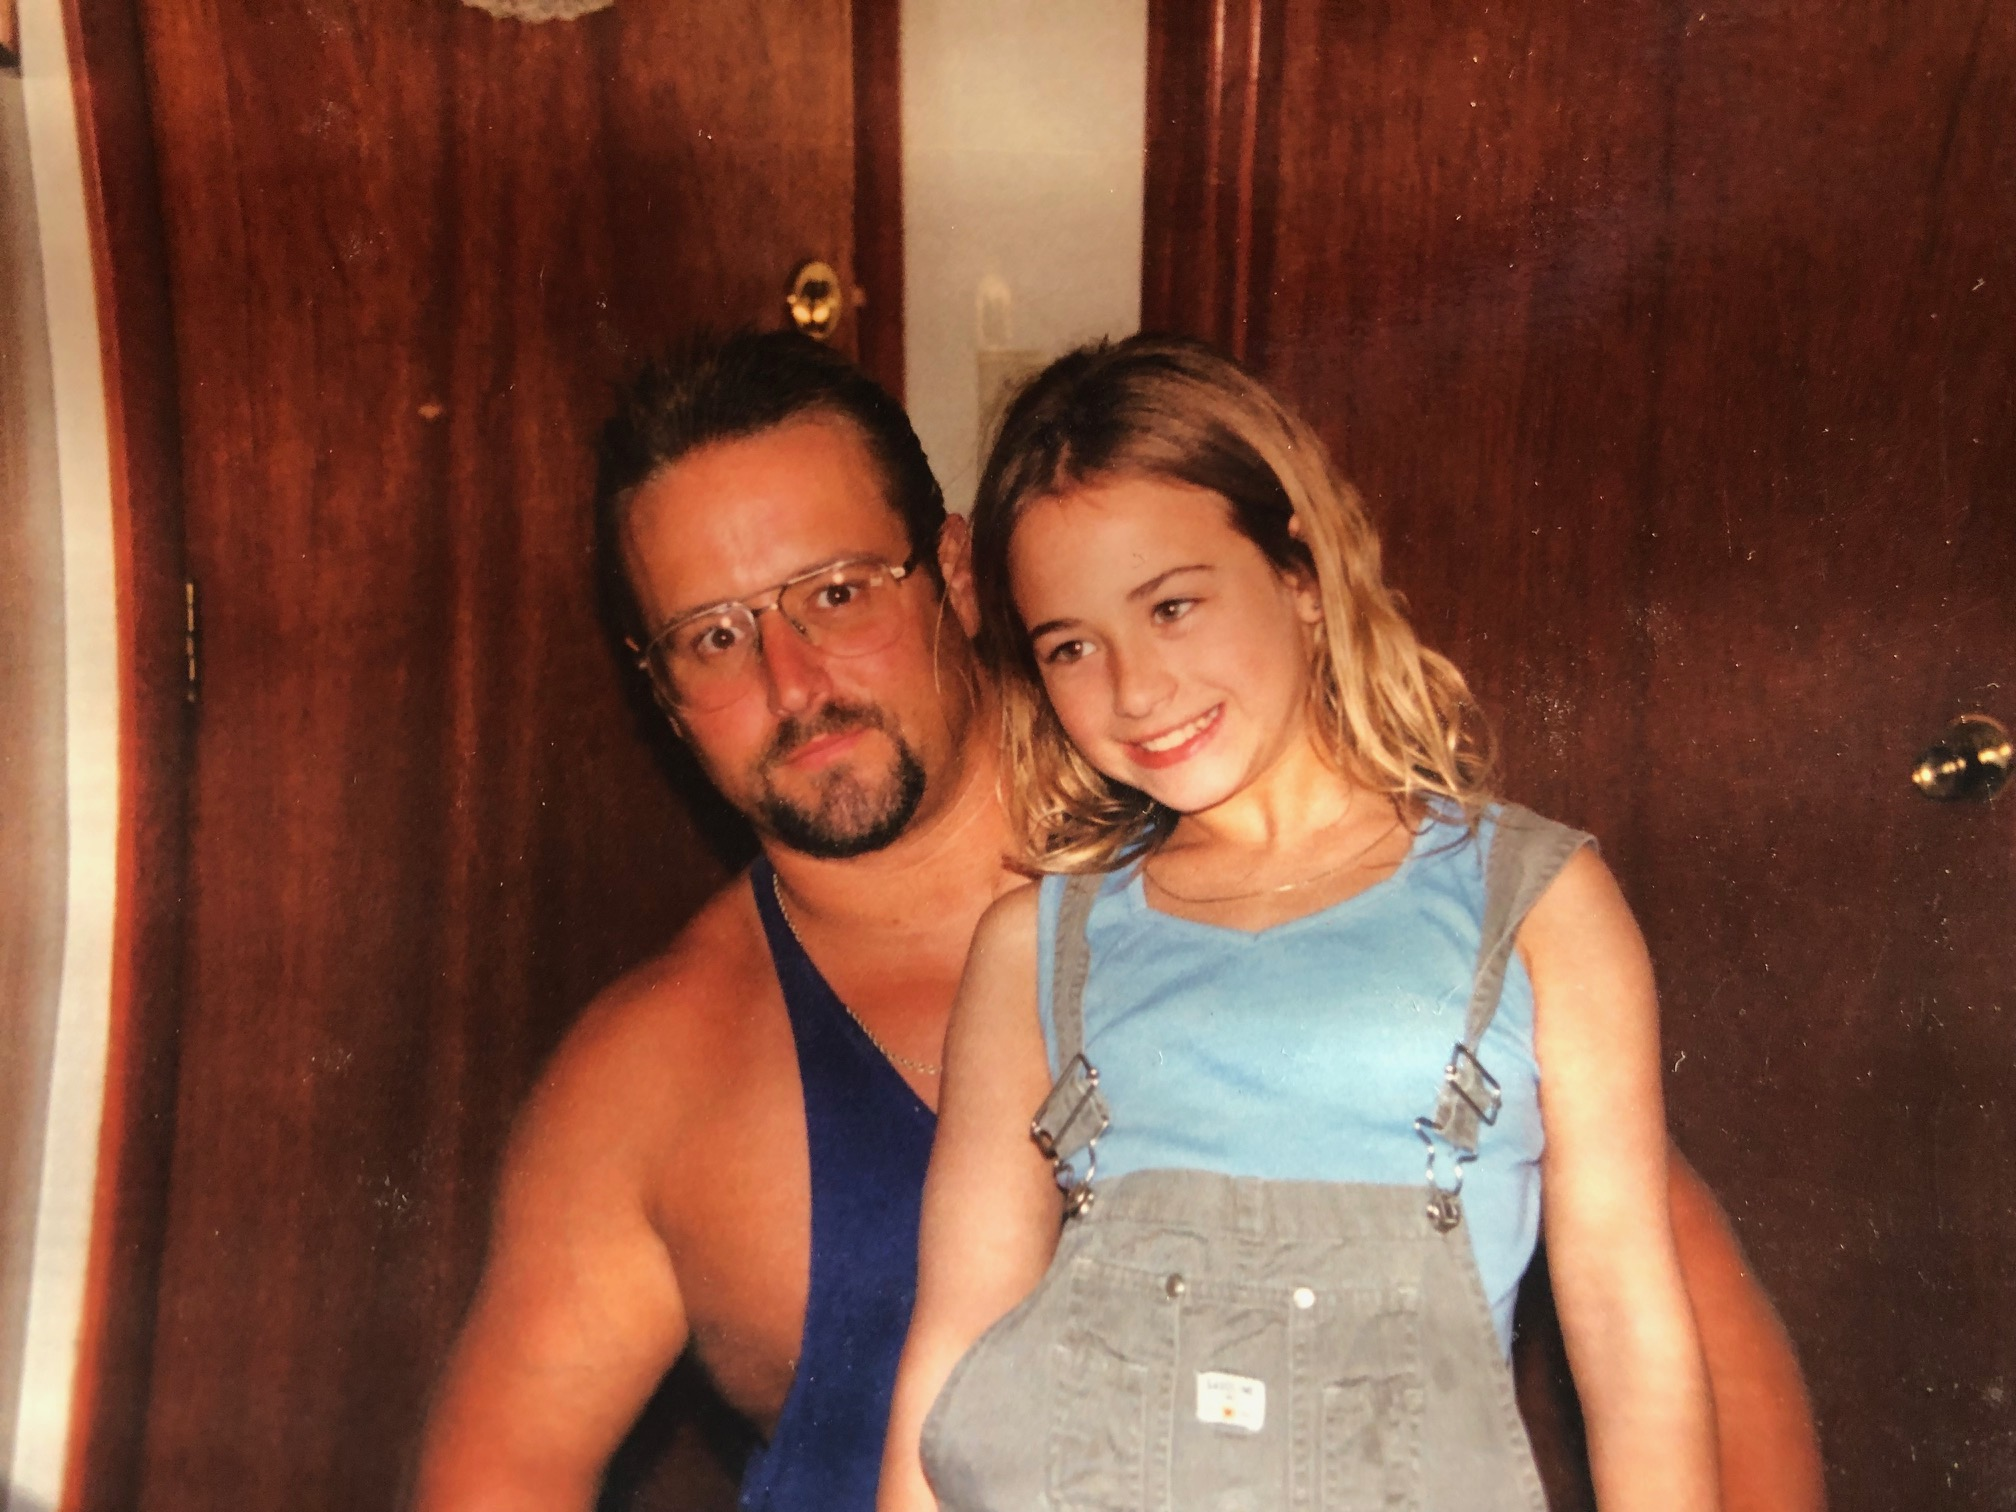 Melissa   Newmarket, NH    What is your dad's name?  Michael   What do you wish people would ask you about your dad?  I wish they'd ask more about him rather than focus on how he died. He died by suicide and I hate how there is still so much stigma behind it. They focus on that and sometimes react negatively to me telling them. He was a good person and his manner of death does not define who he was as a person. He was a good dad.   What's your favorite memory of your dad?  We used to go to the movies every weekend. We started going when I was around 7 years old and we kept the ritual going until his passing last year. I'm currently 28.